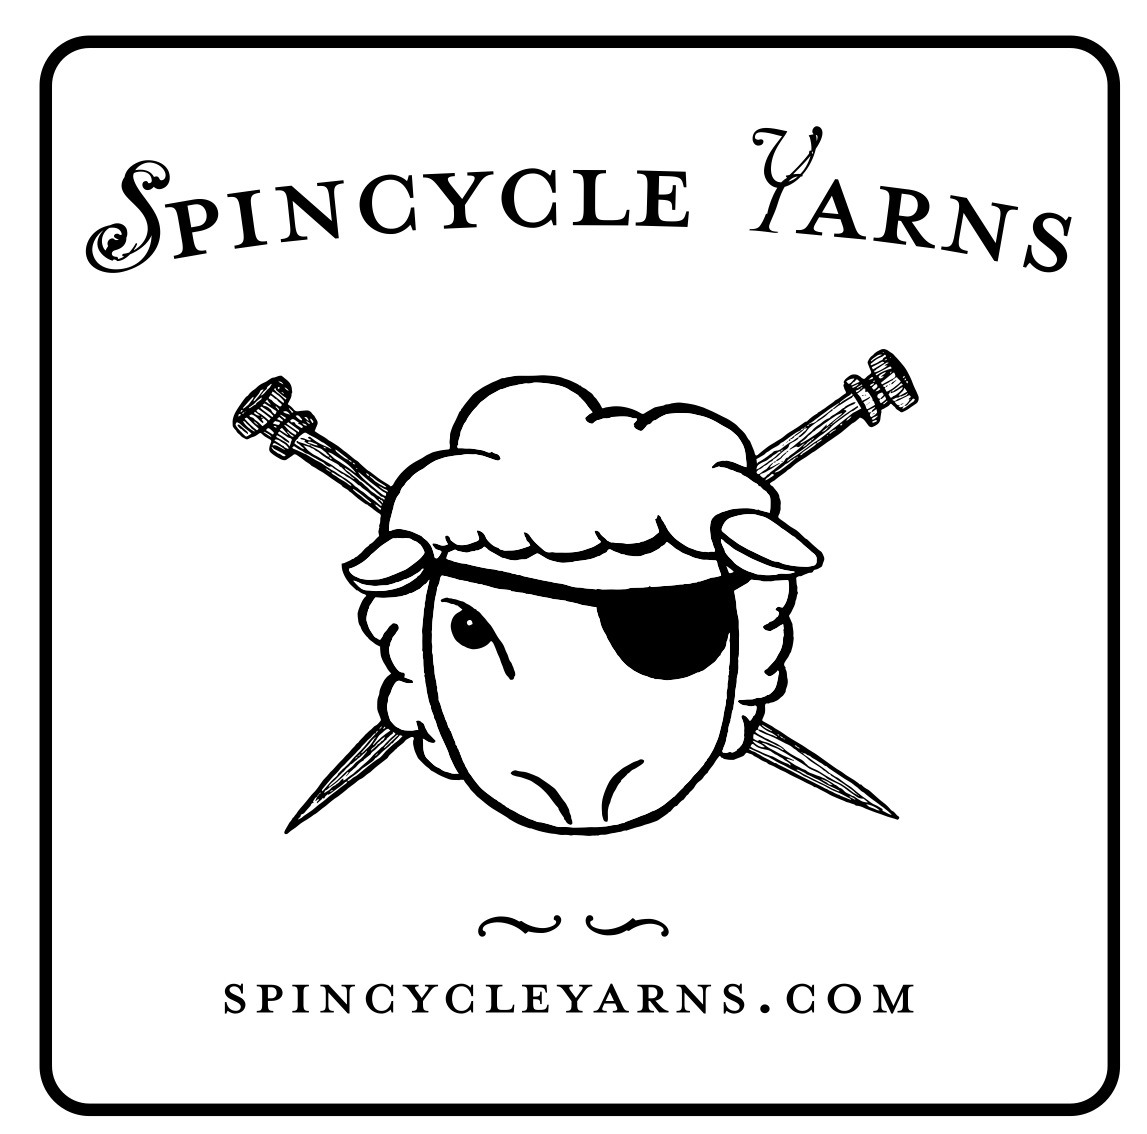 Spincycle yarns at For Yarns Sake